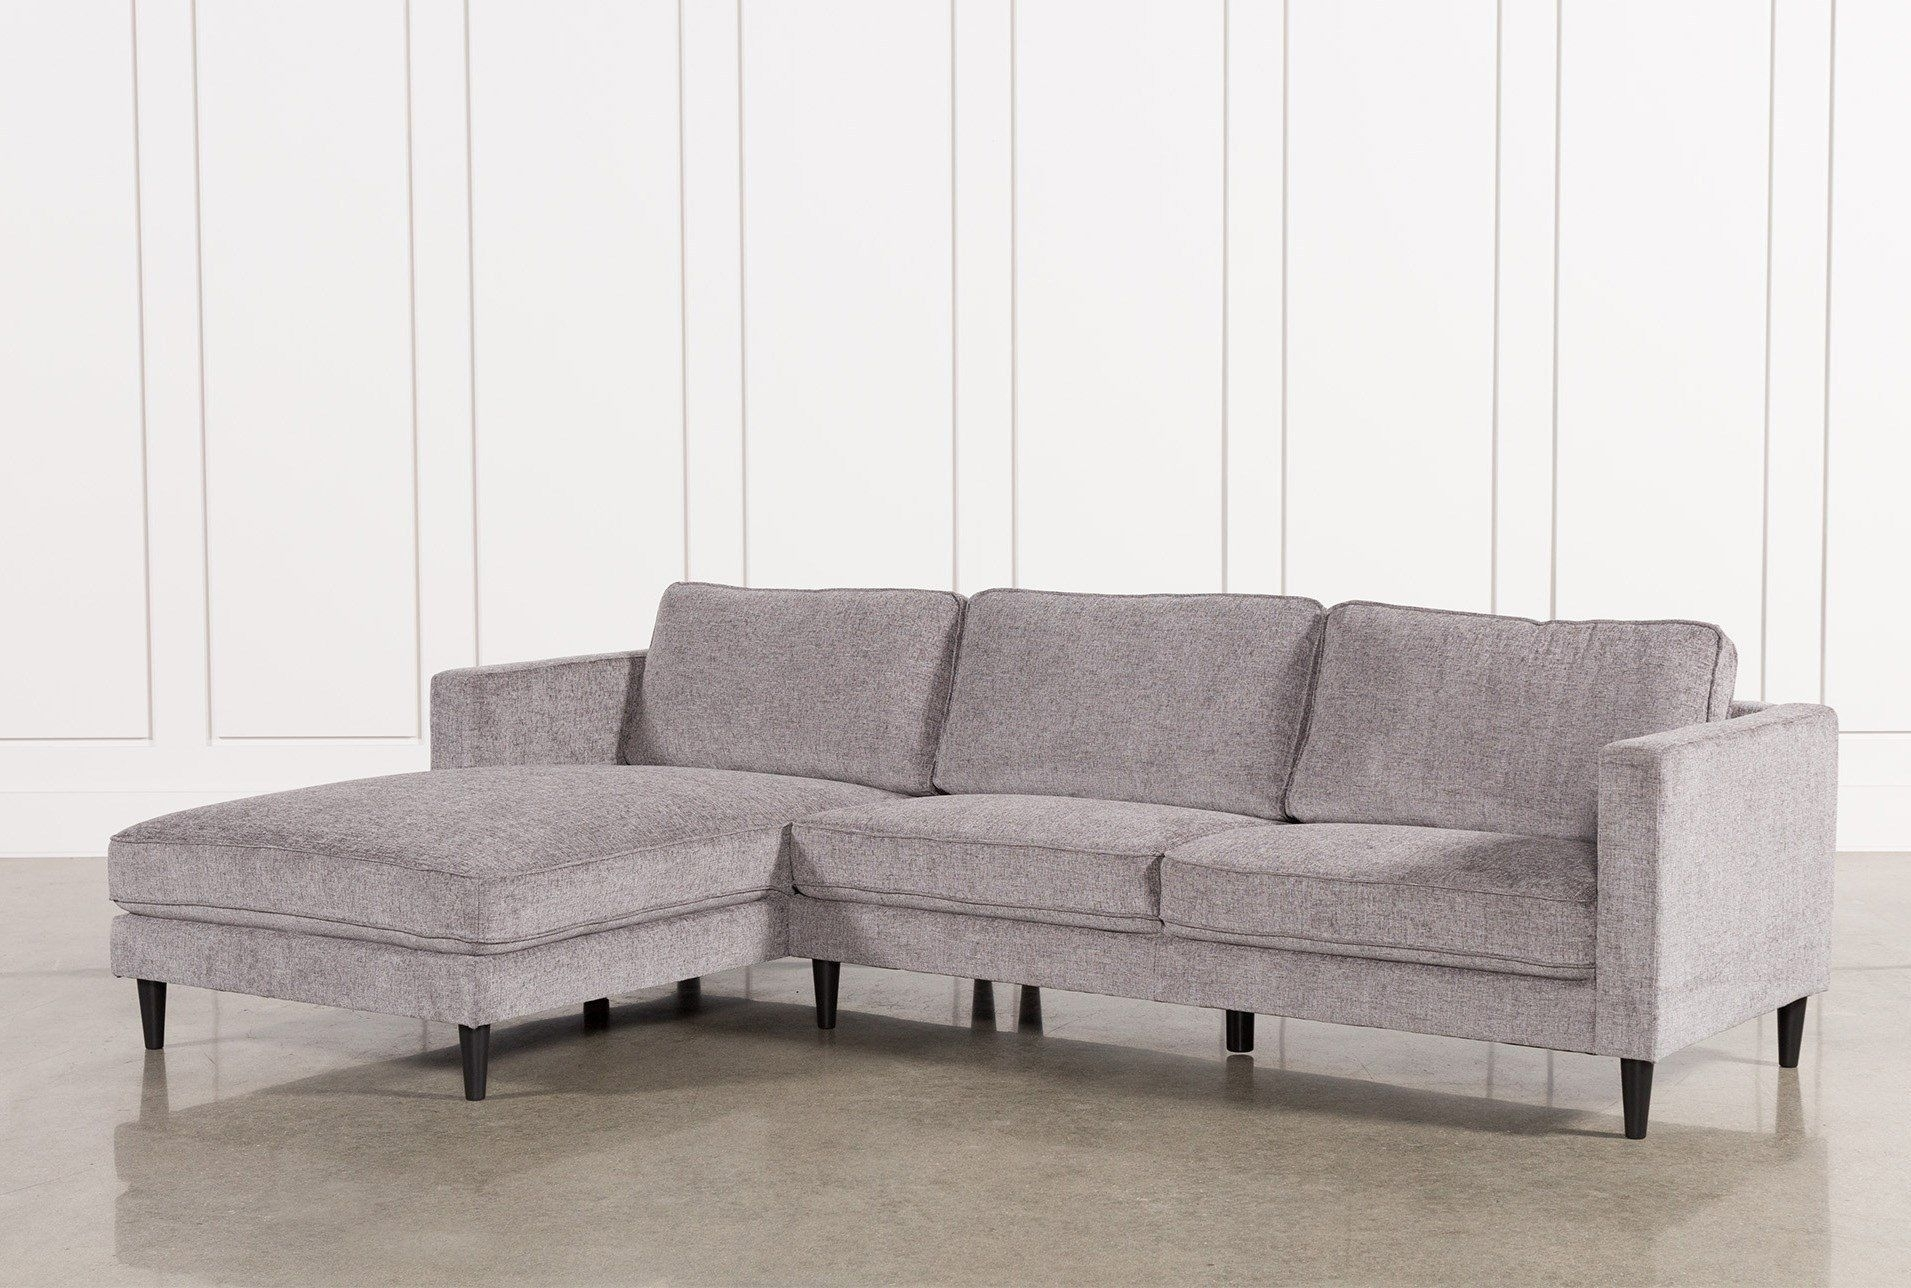 Cosmos Grey 2 Piece Sectional W/laf Chaise | Couches | Pinterest With Tatum Dark Grey 2 Piece Sectionals With Laf Chaise (Image 2 of 25)